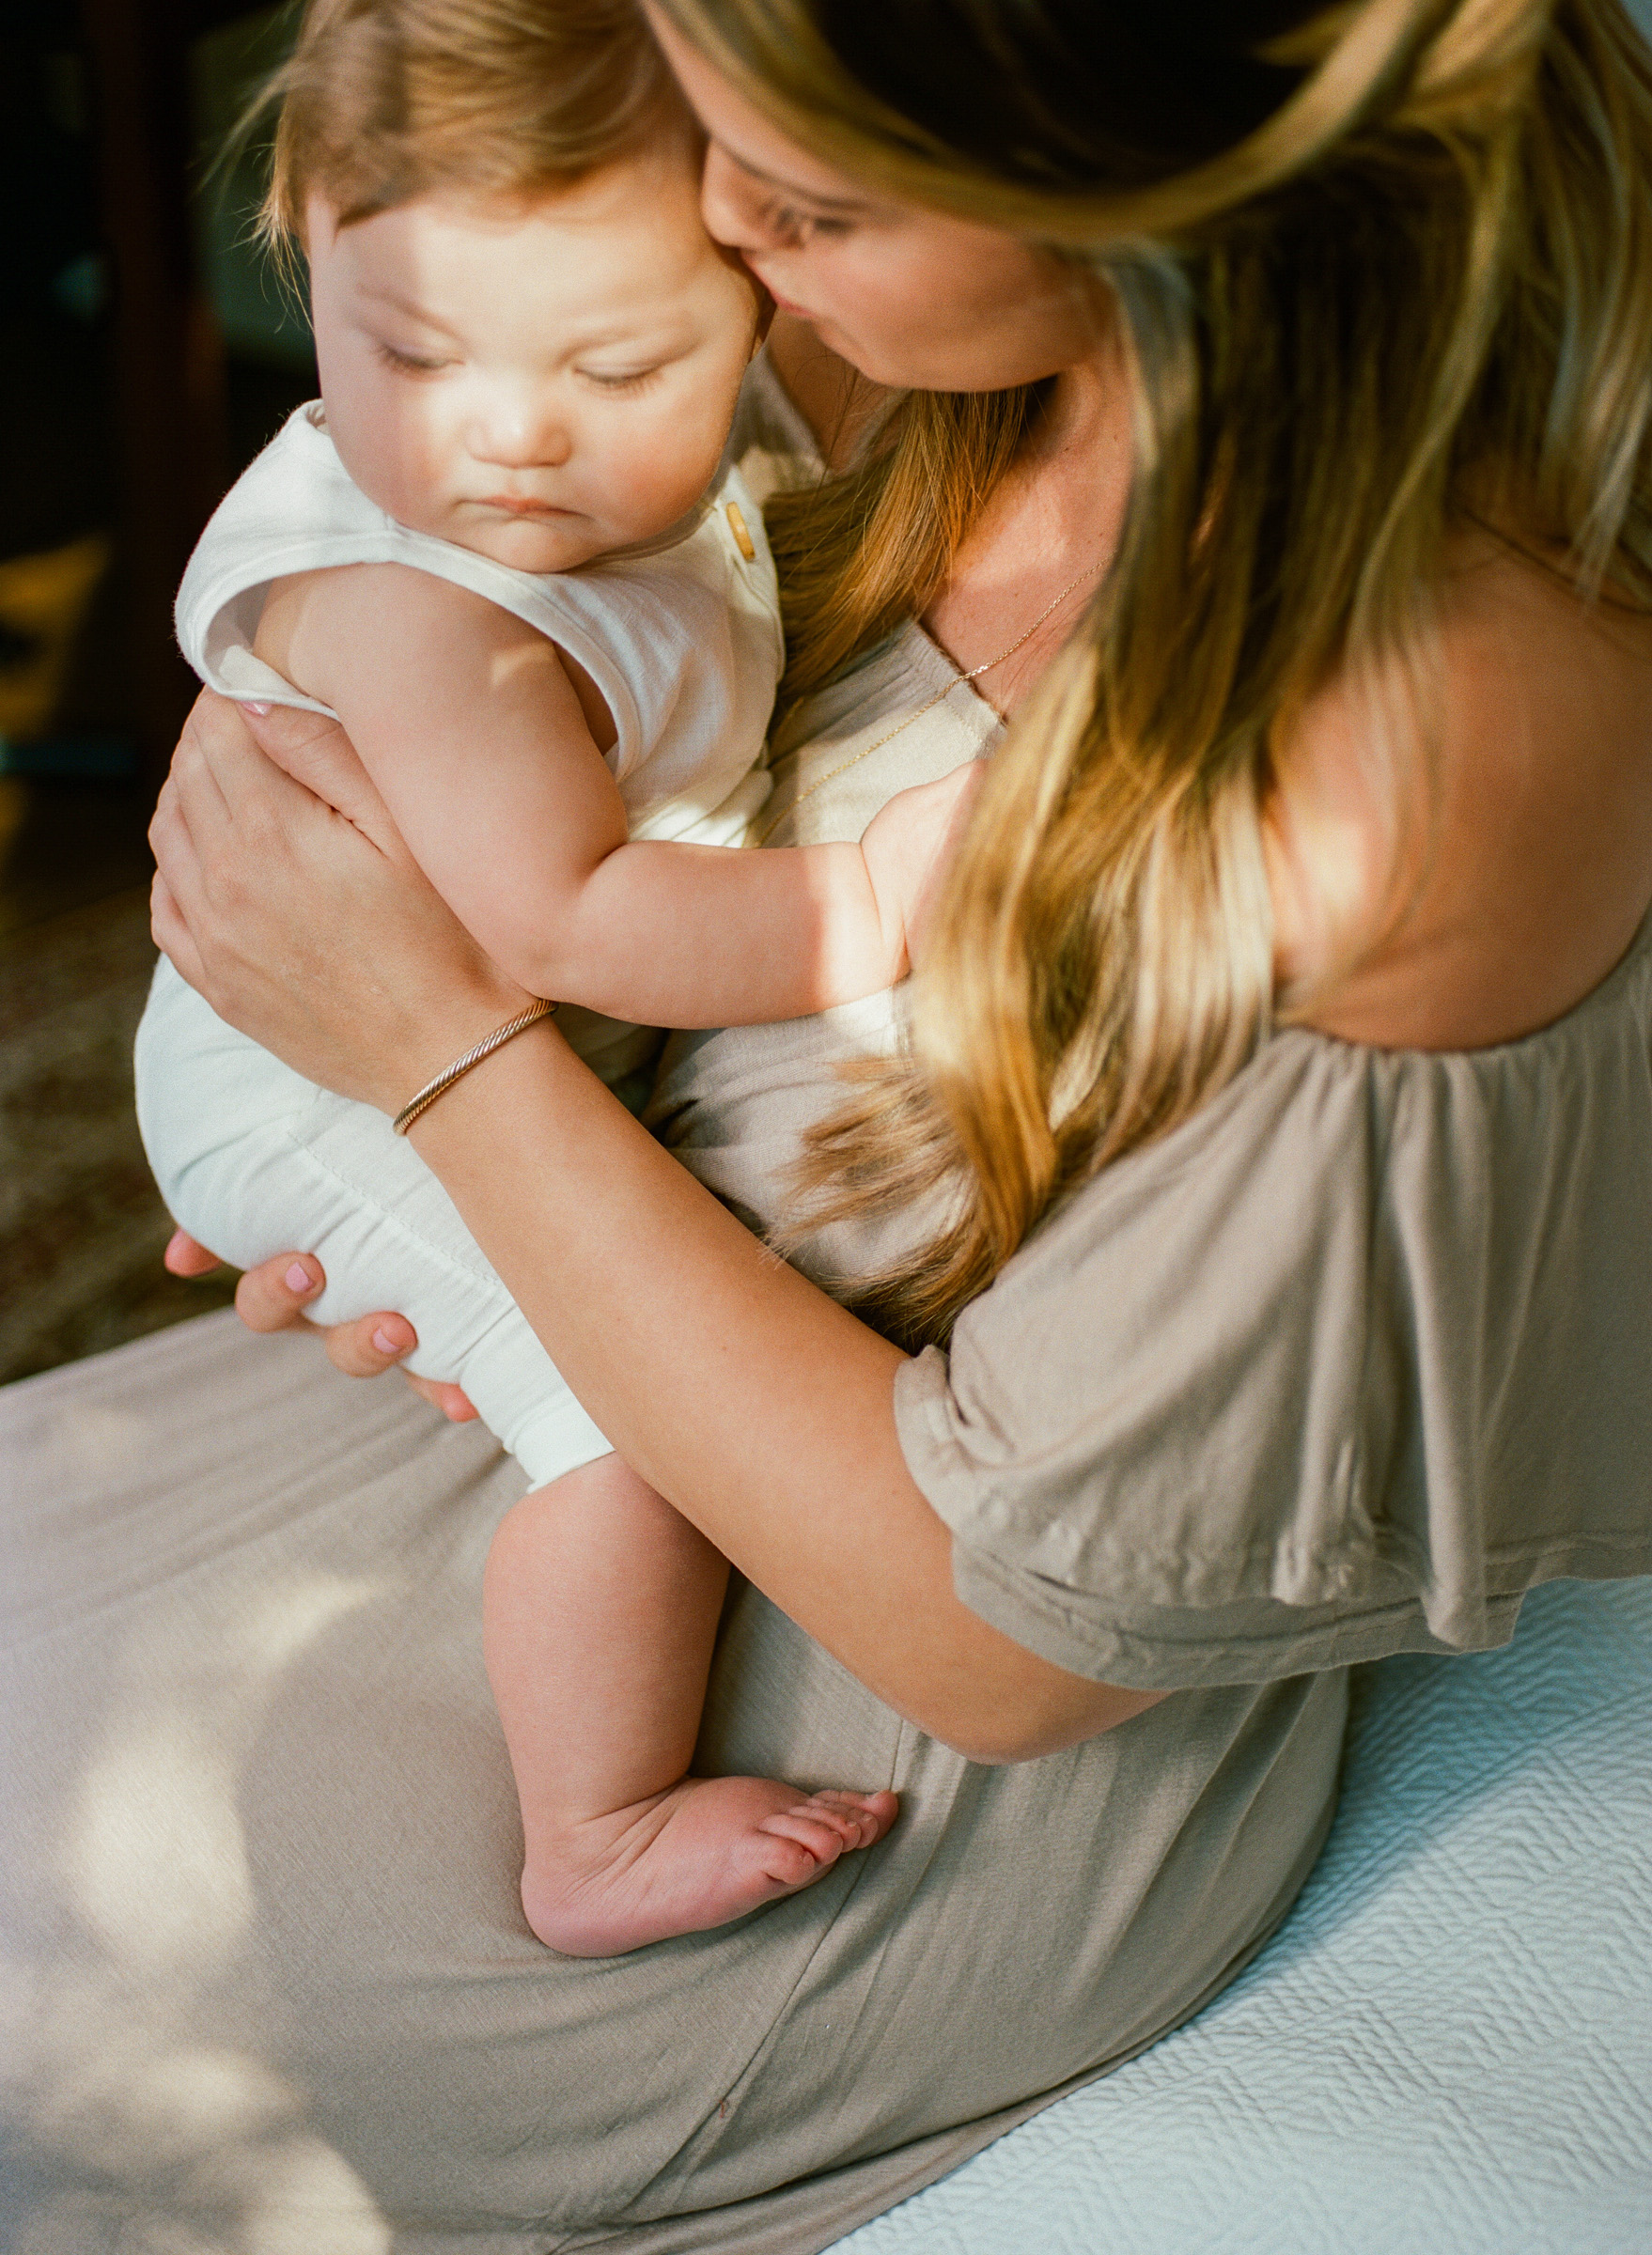 raleigh-newborn-family-film-photographer-milestone-family-baby-raleigh